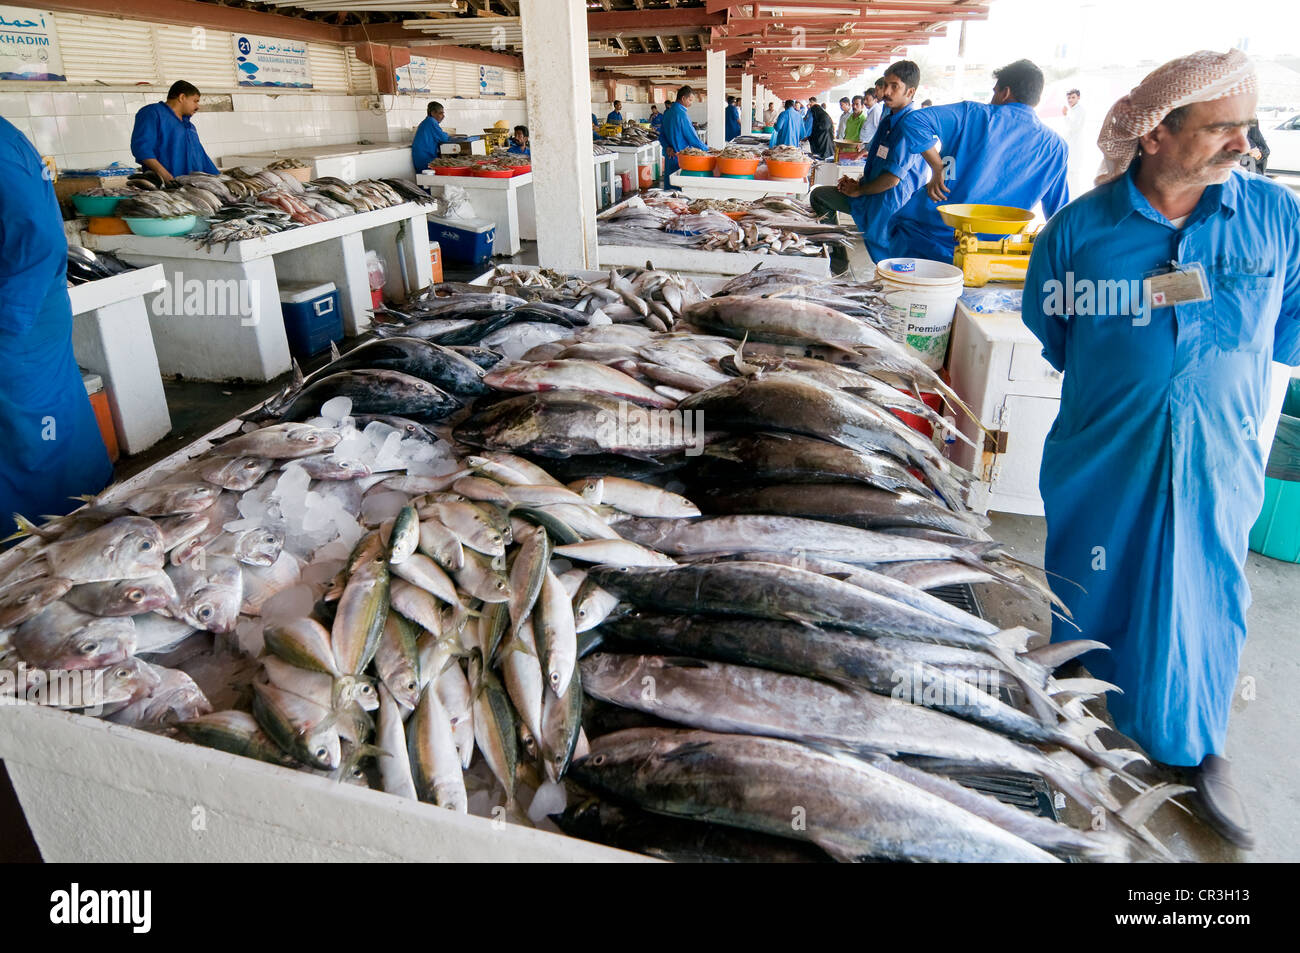 Fish market sharjah united arab emirates middle east for Wholesale fish market near me